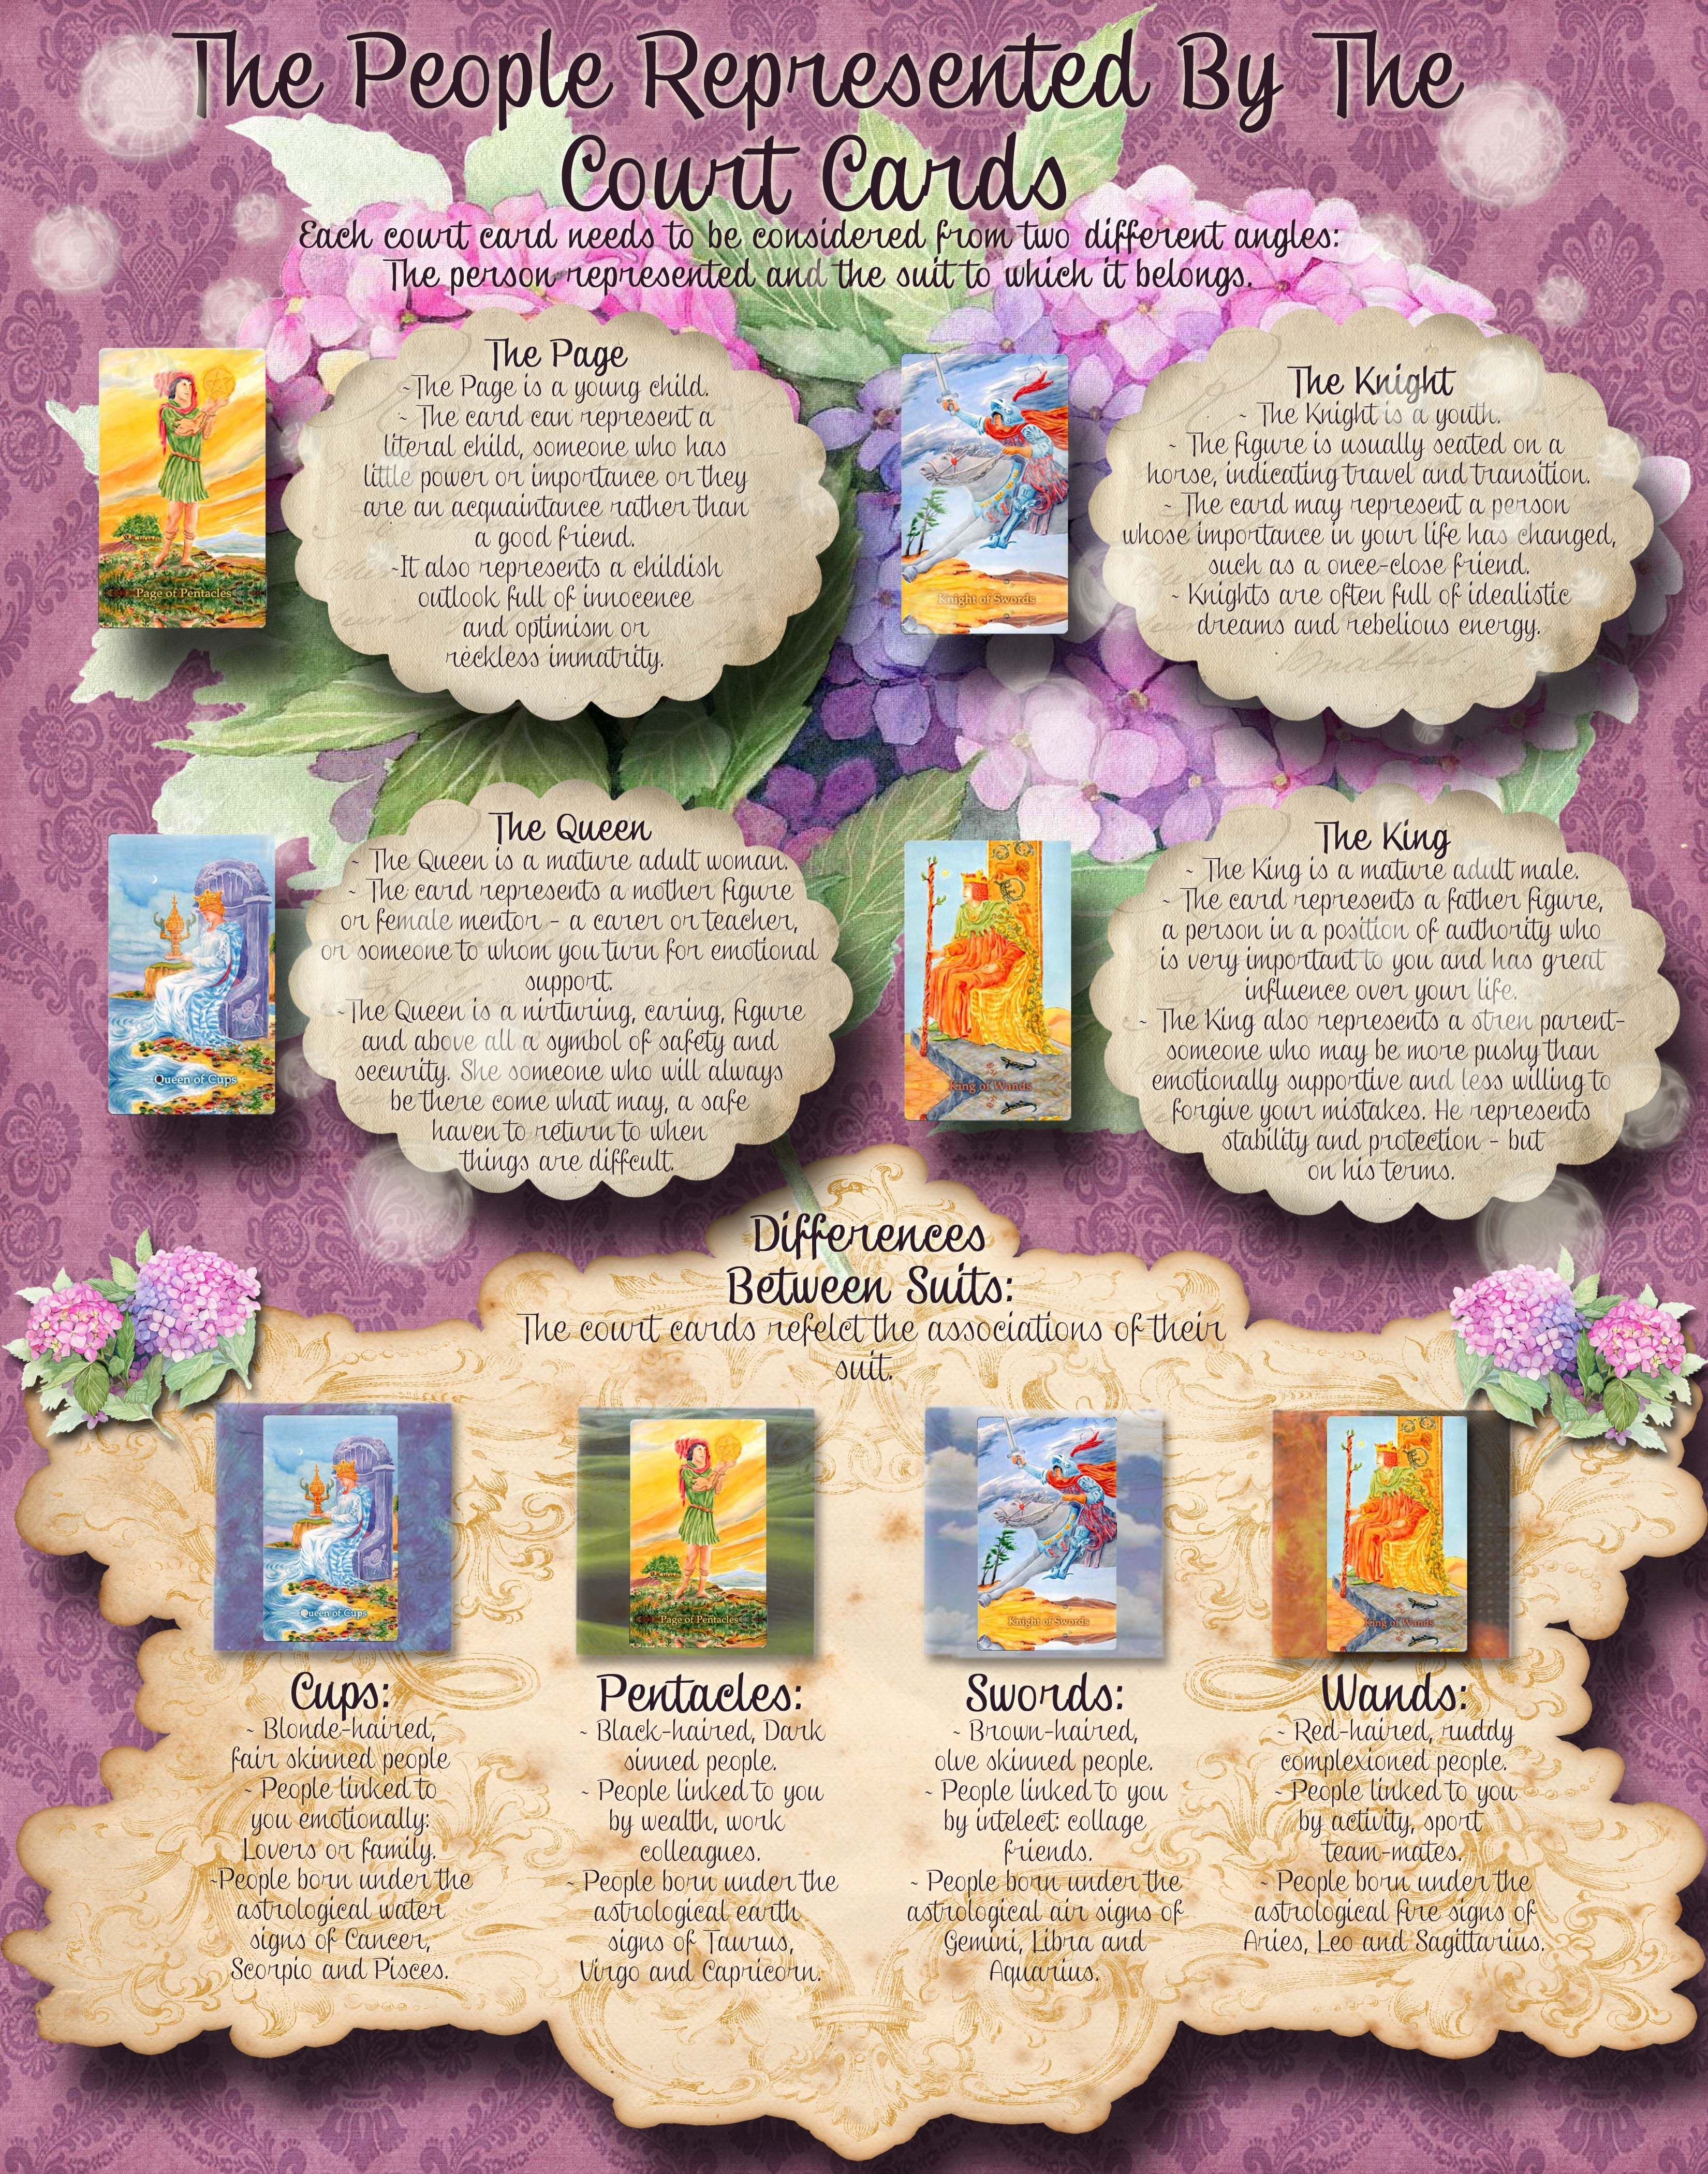 Tarot card meanings and The people represented by the Tarot